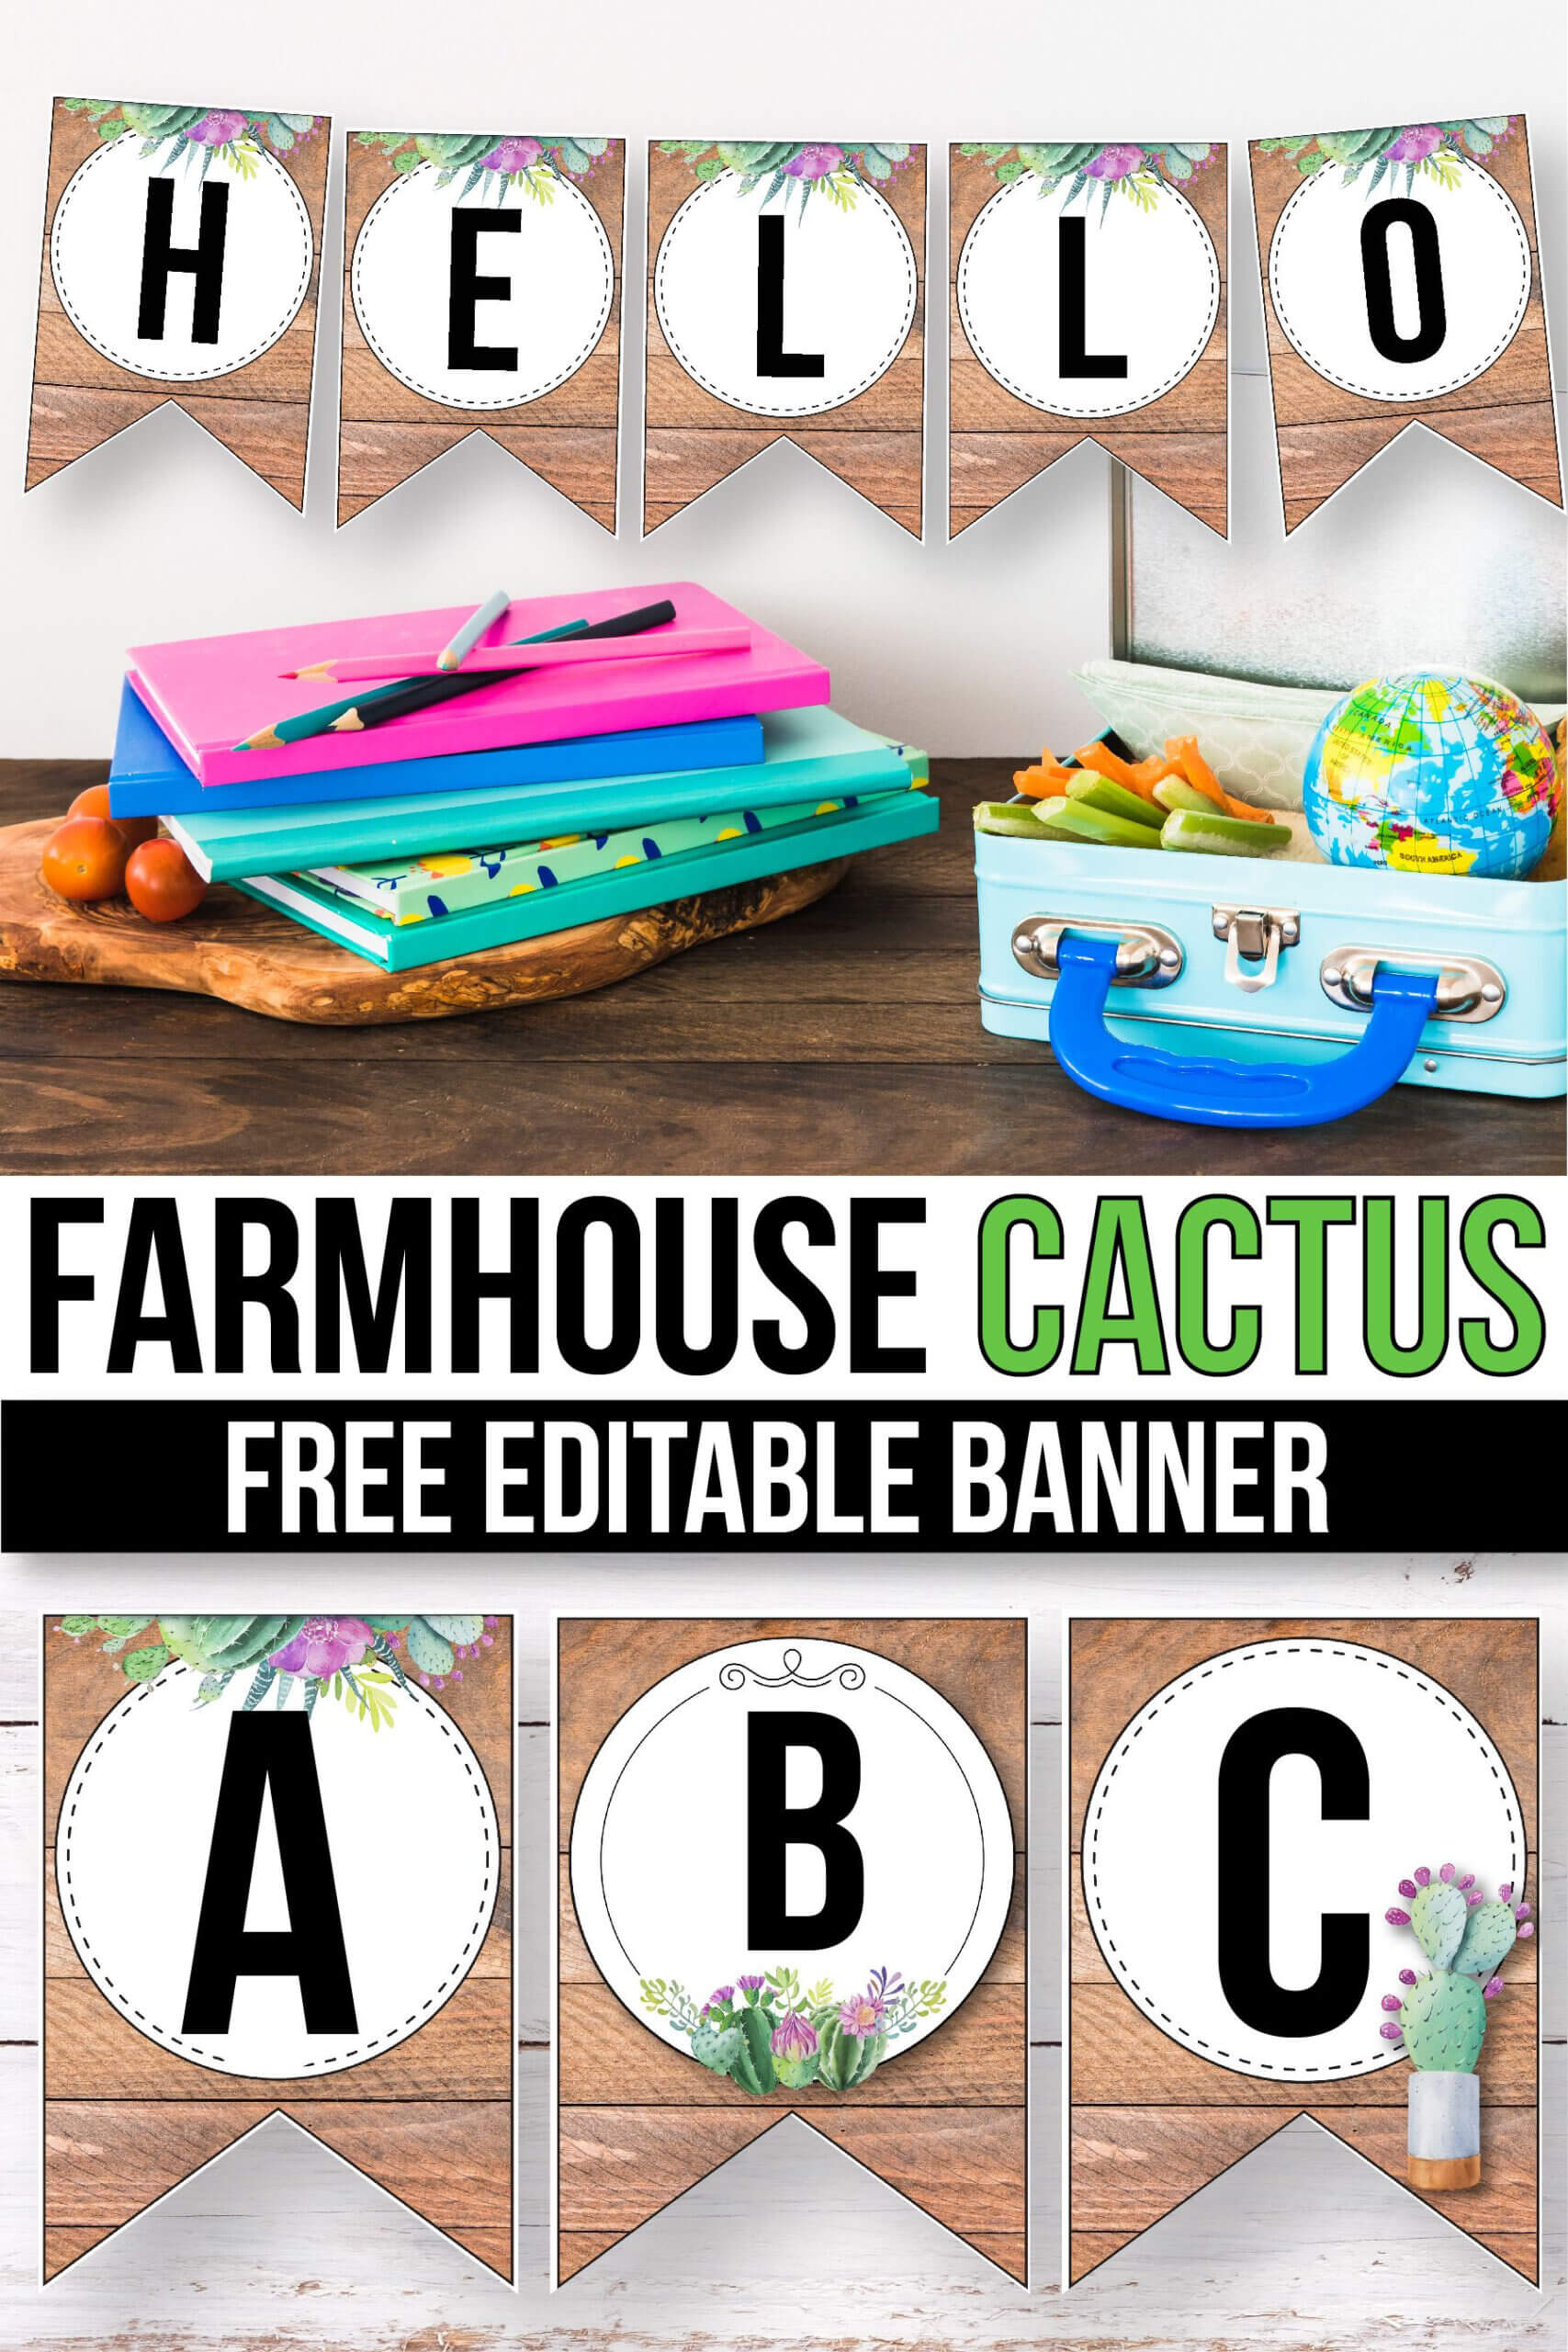 Free Succulent Banner For The Classroom - Cactus Classroom With Classroom Banner Template